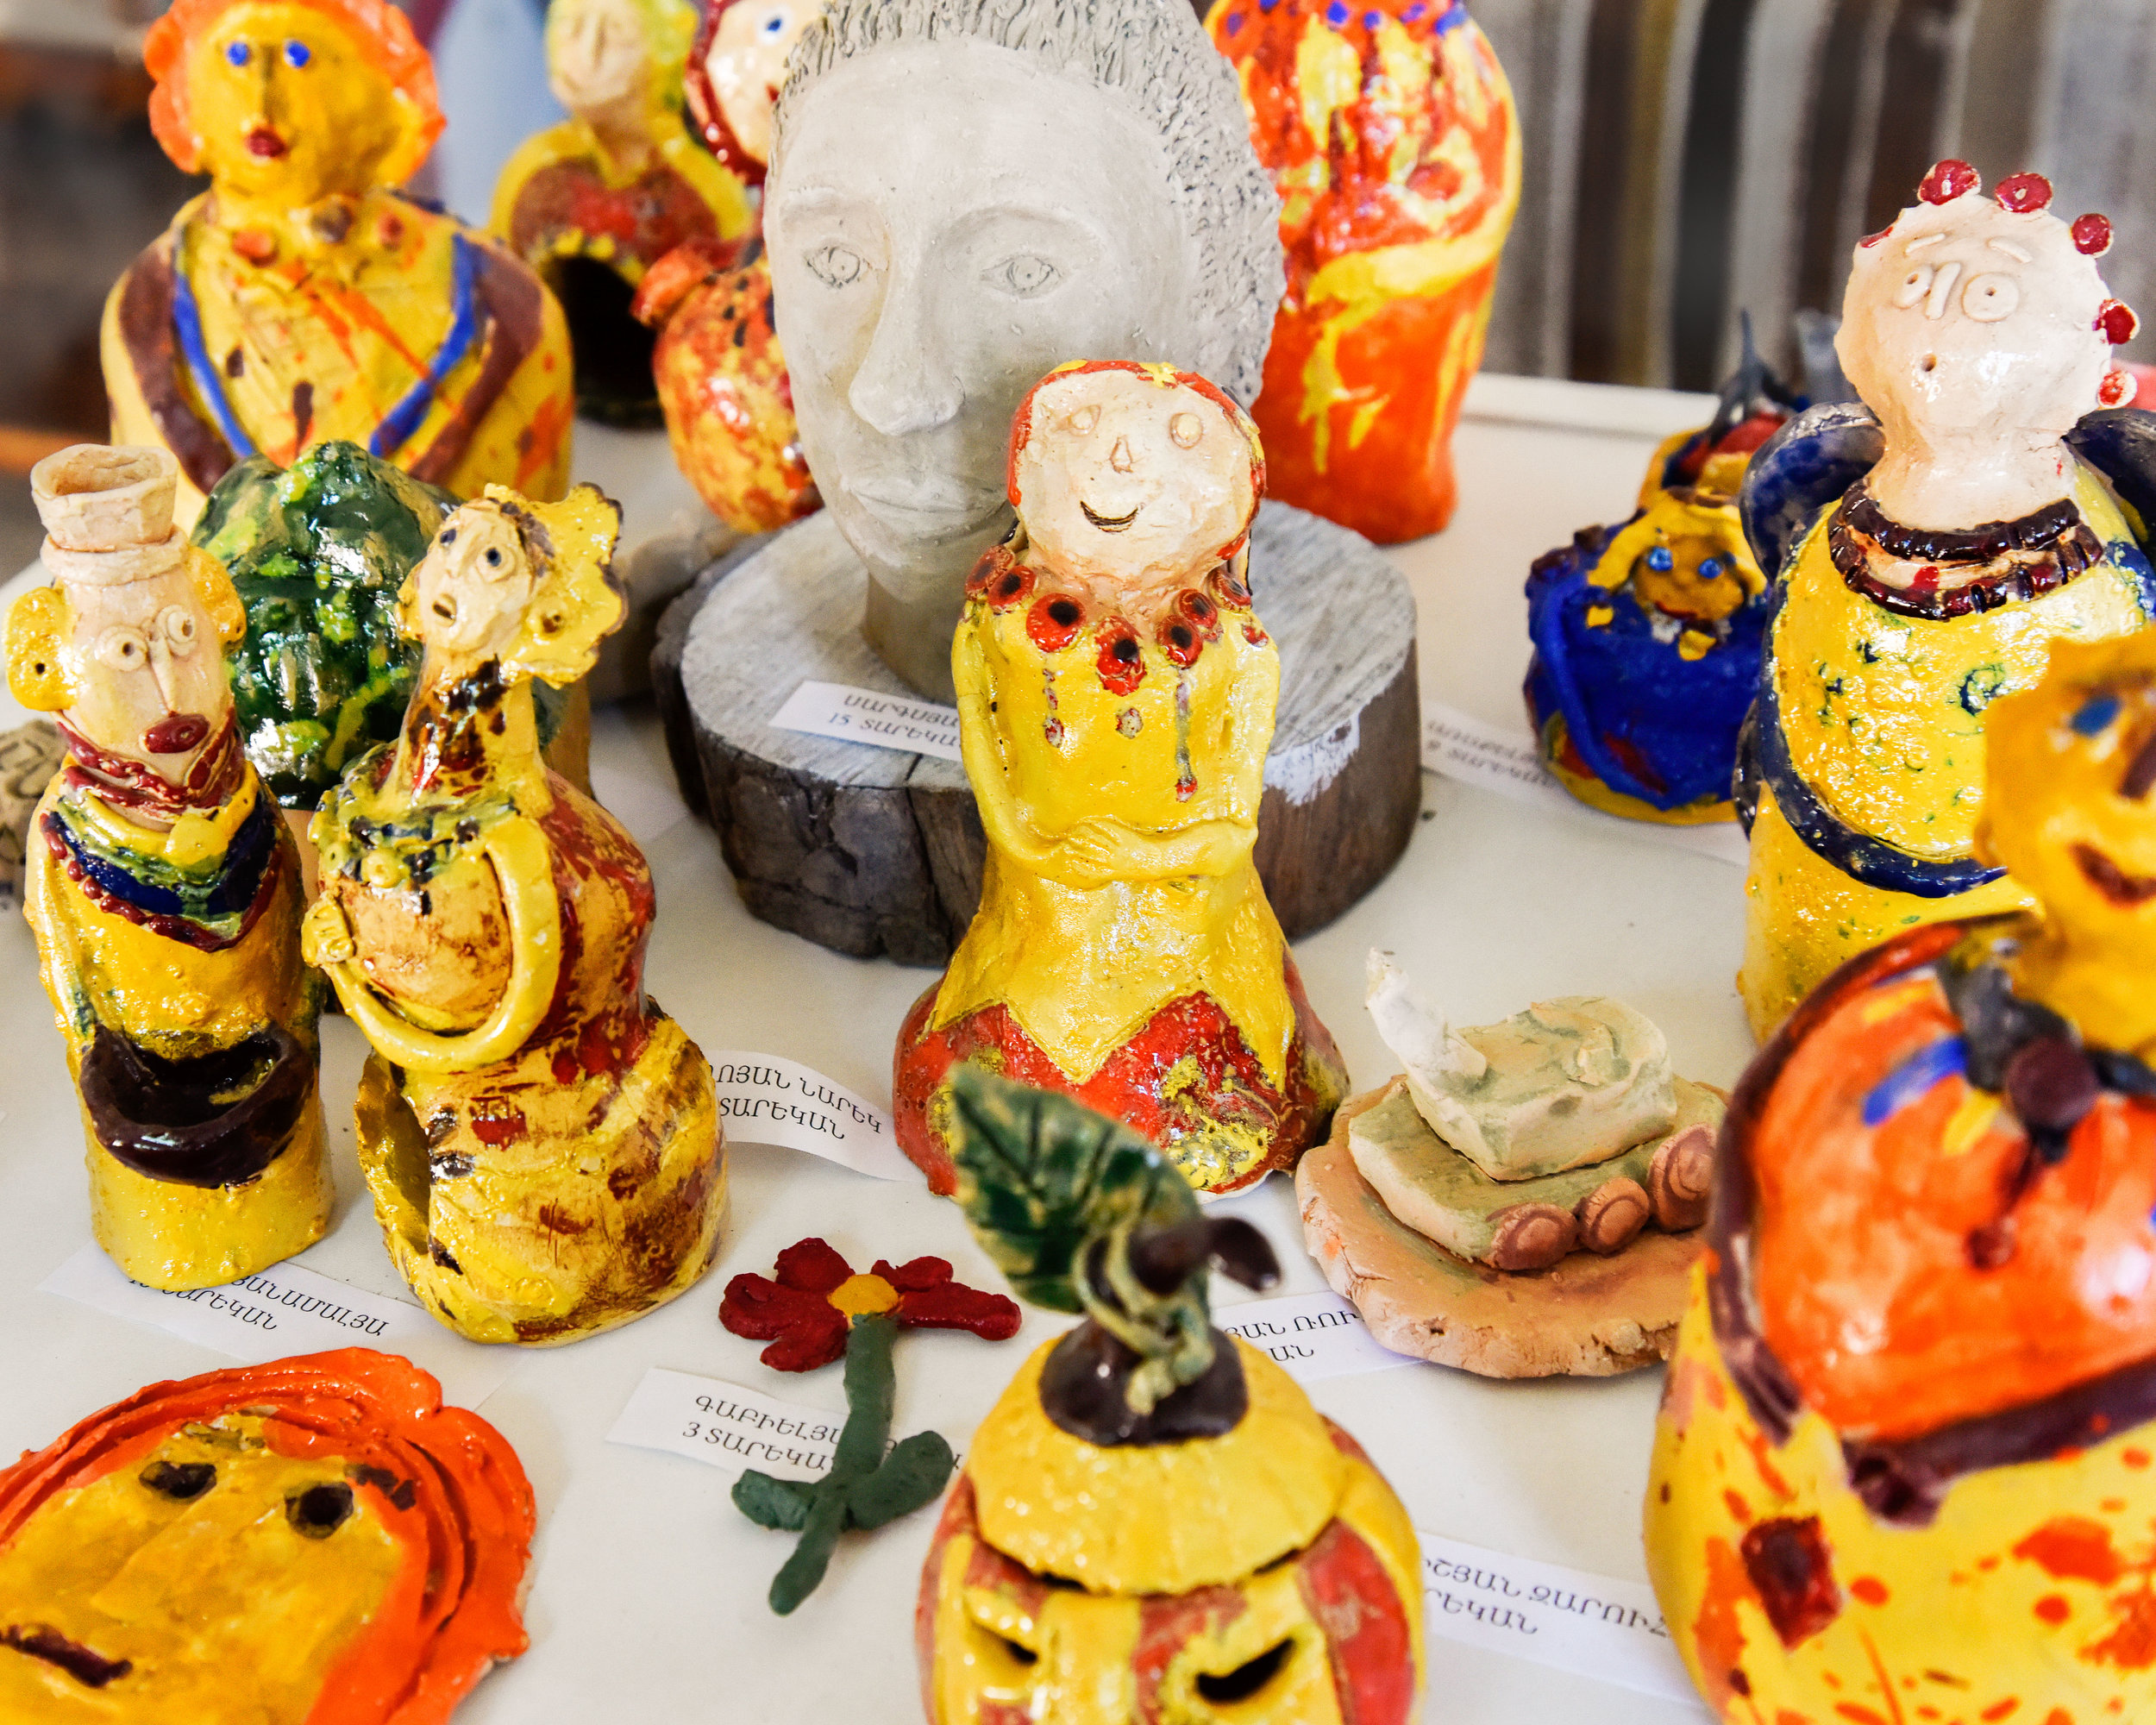 Handmade ceramic figures in traditional dress in the shop selling the student artists' work.